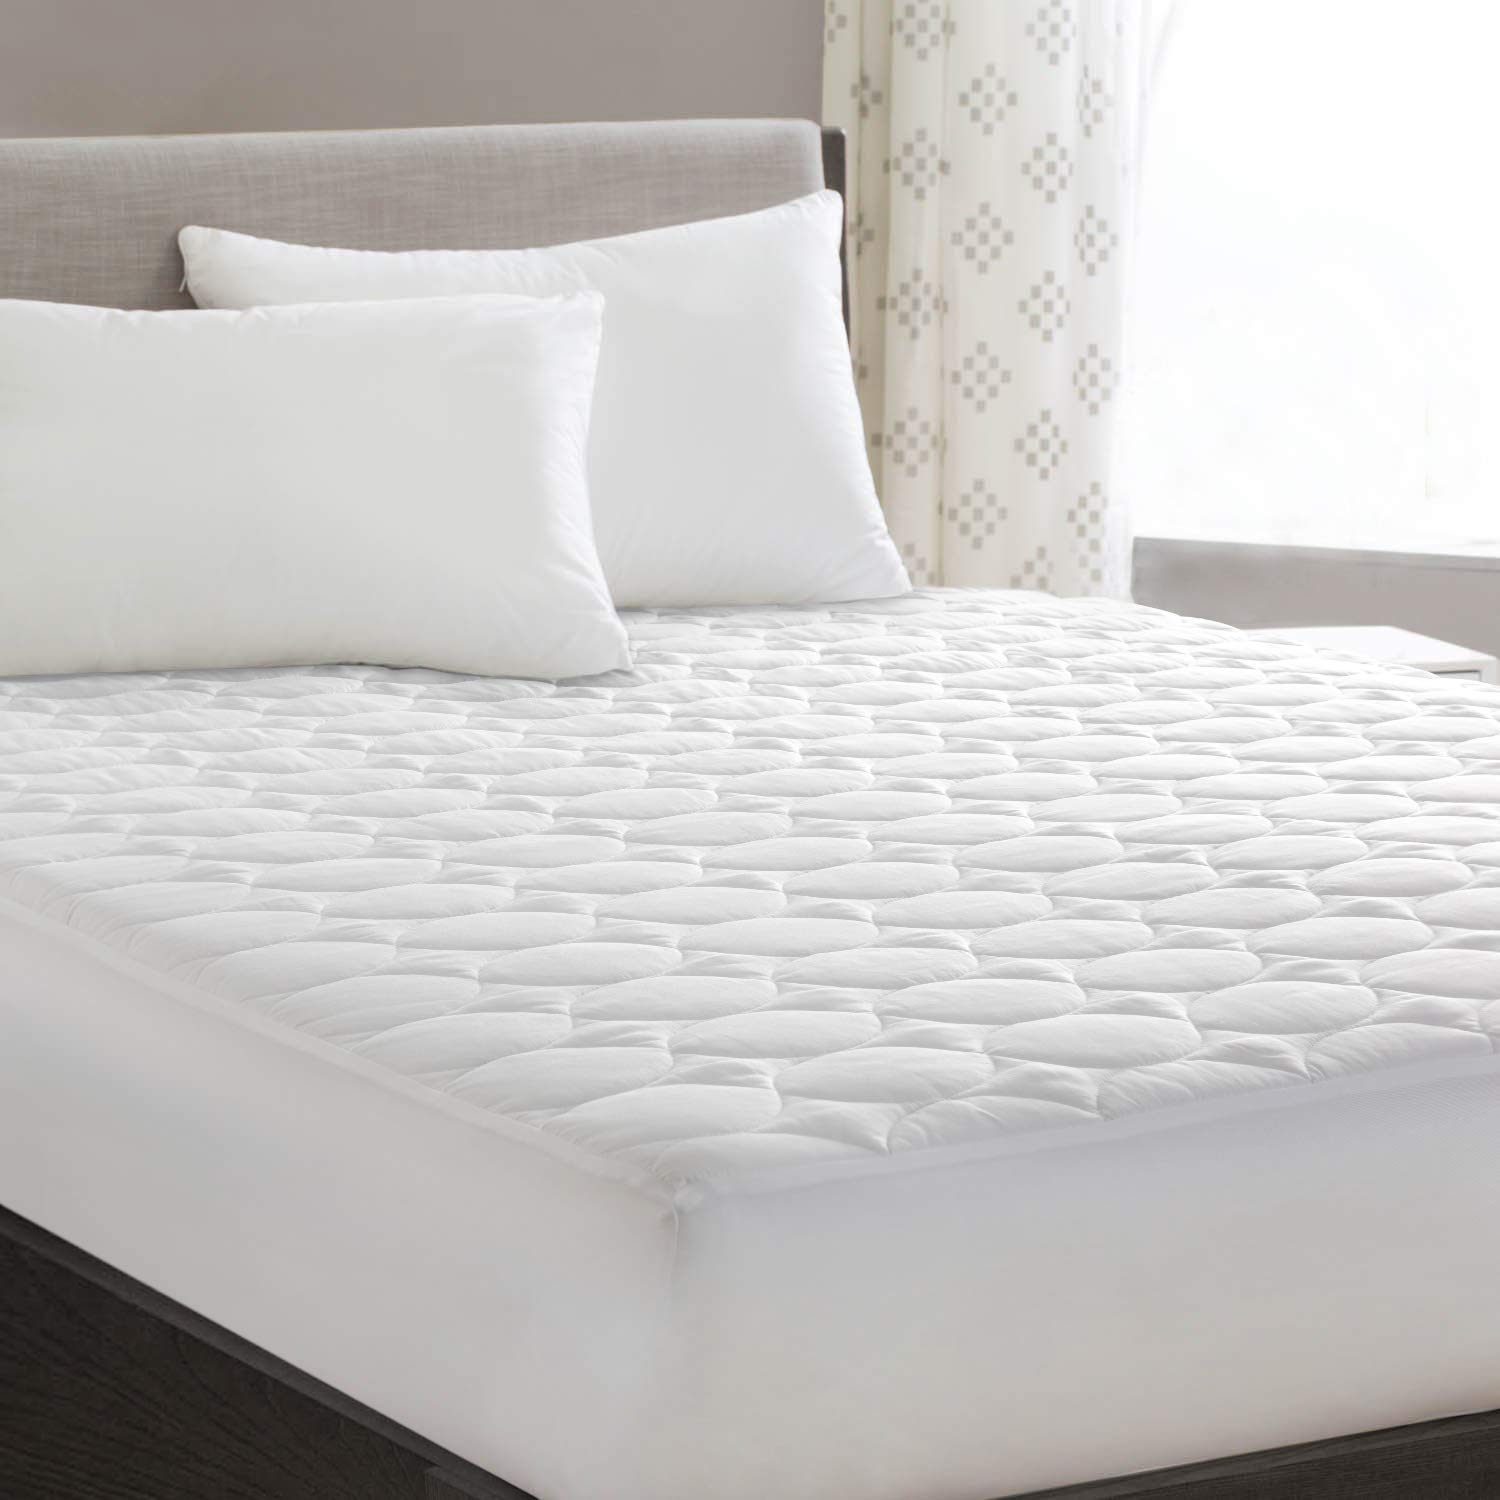 "HYLEORY Queen Mattress Pad Cover Quilted Fitted with Stretches to 18"" Deep Pocket White Cooling Hypoallergenic Mattress Topper Protector (60""x80"")"